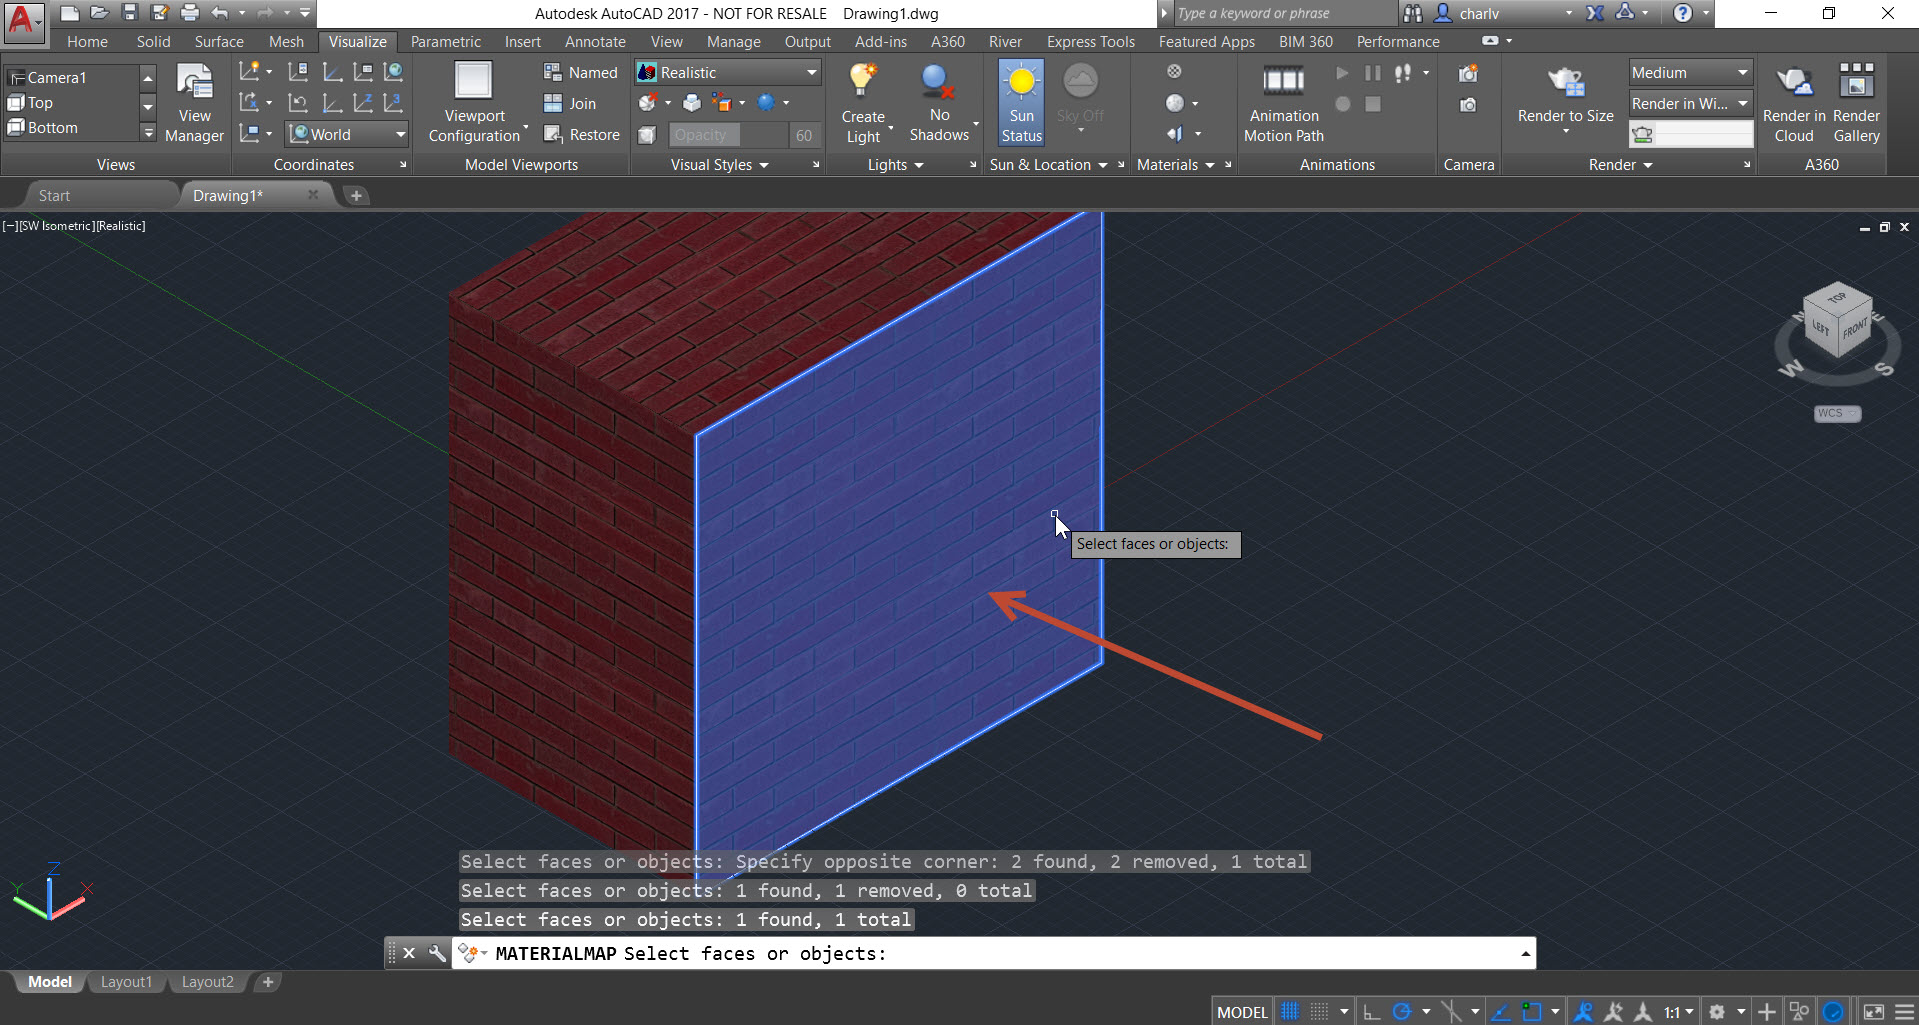 Mapping-3 How to use Planar Material Mapping in AutoCAD